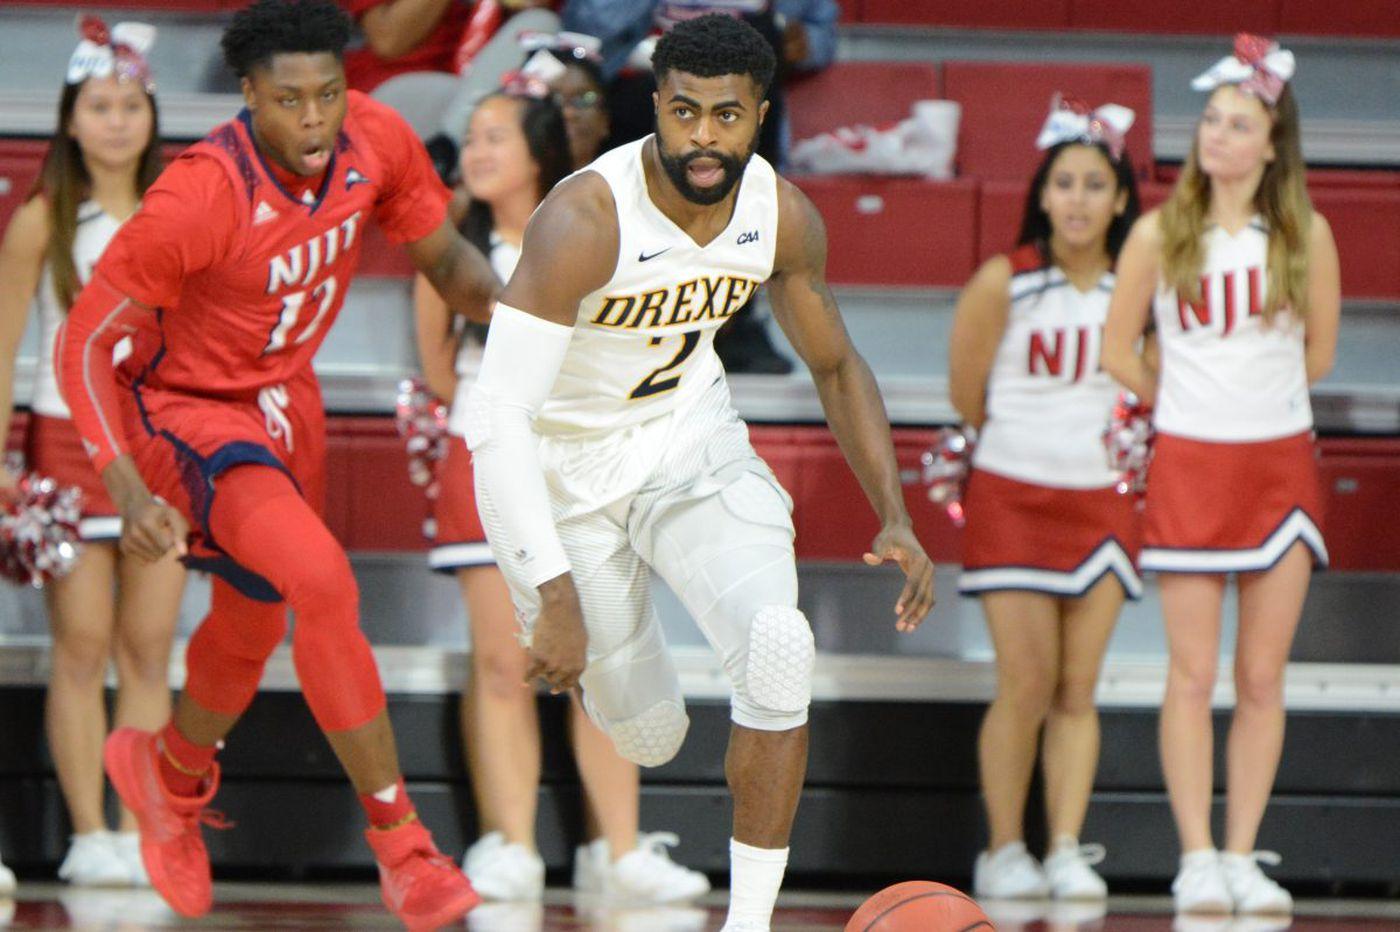 Drexel rally falls short in 72-66 loss to Delaware